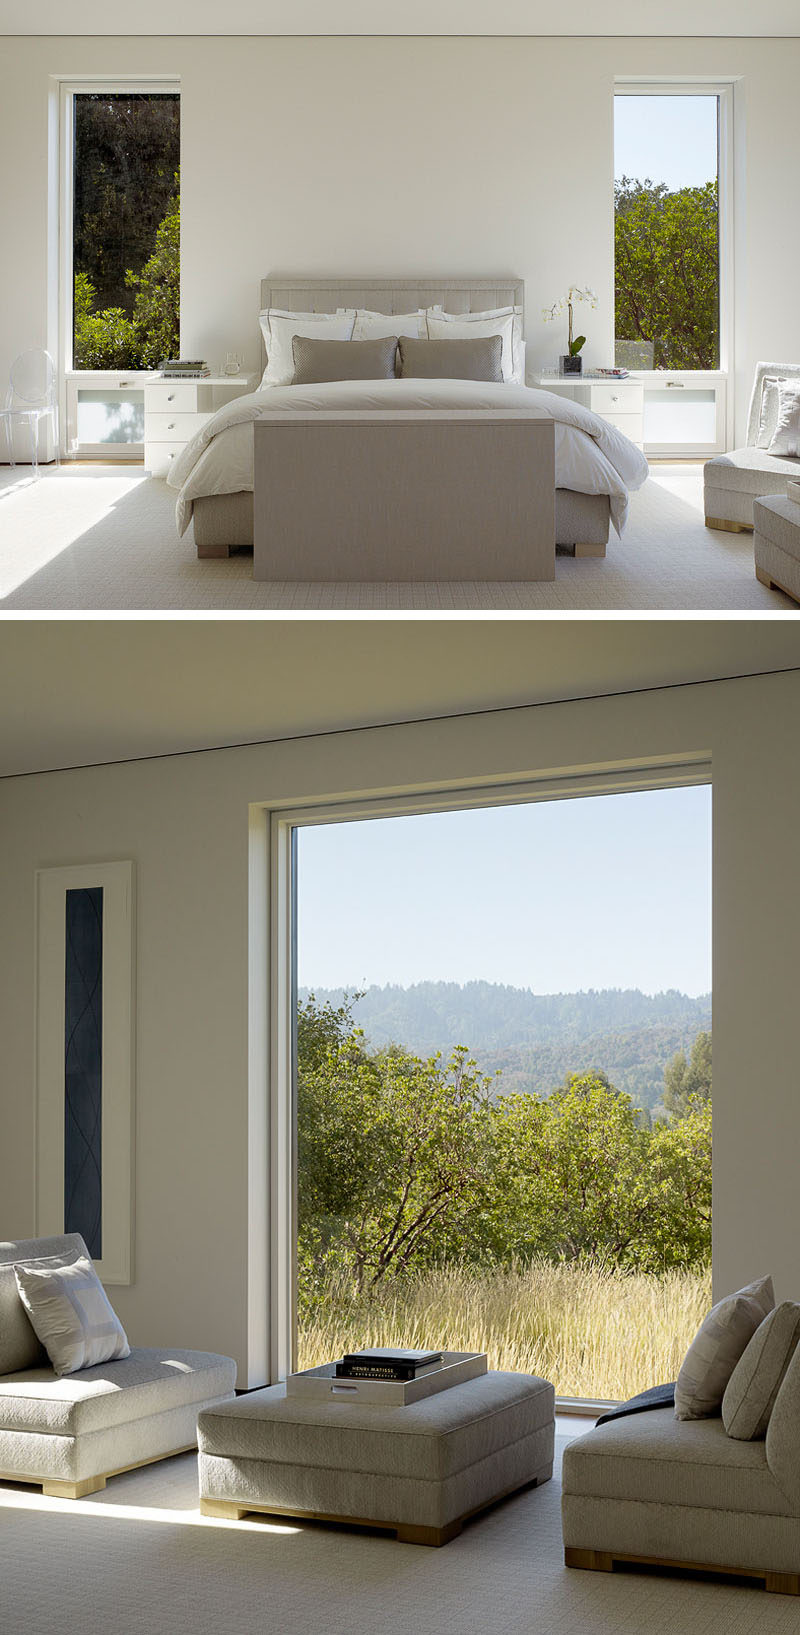 In this contemporary master bedroom, which is large enough to have a small sitting area, the trees outside add a pop of green to the neutral color palette. #Windows #ContemporaryBedroom